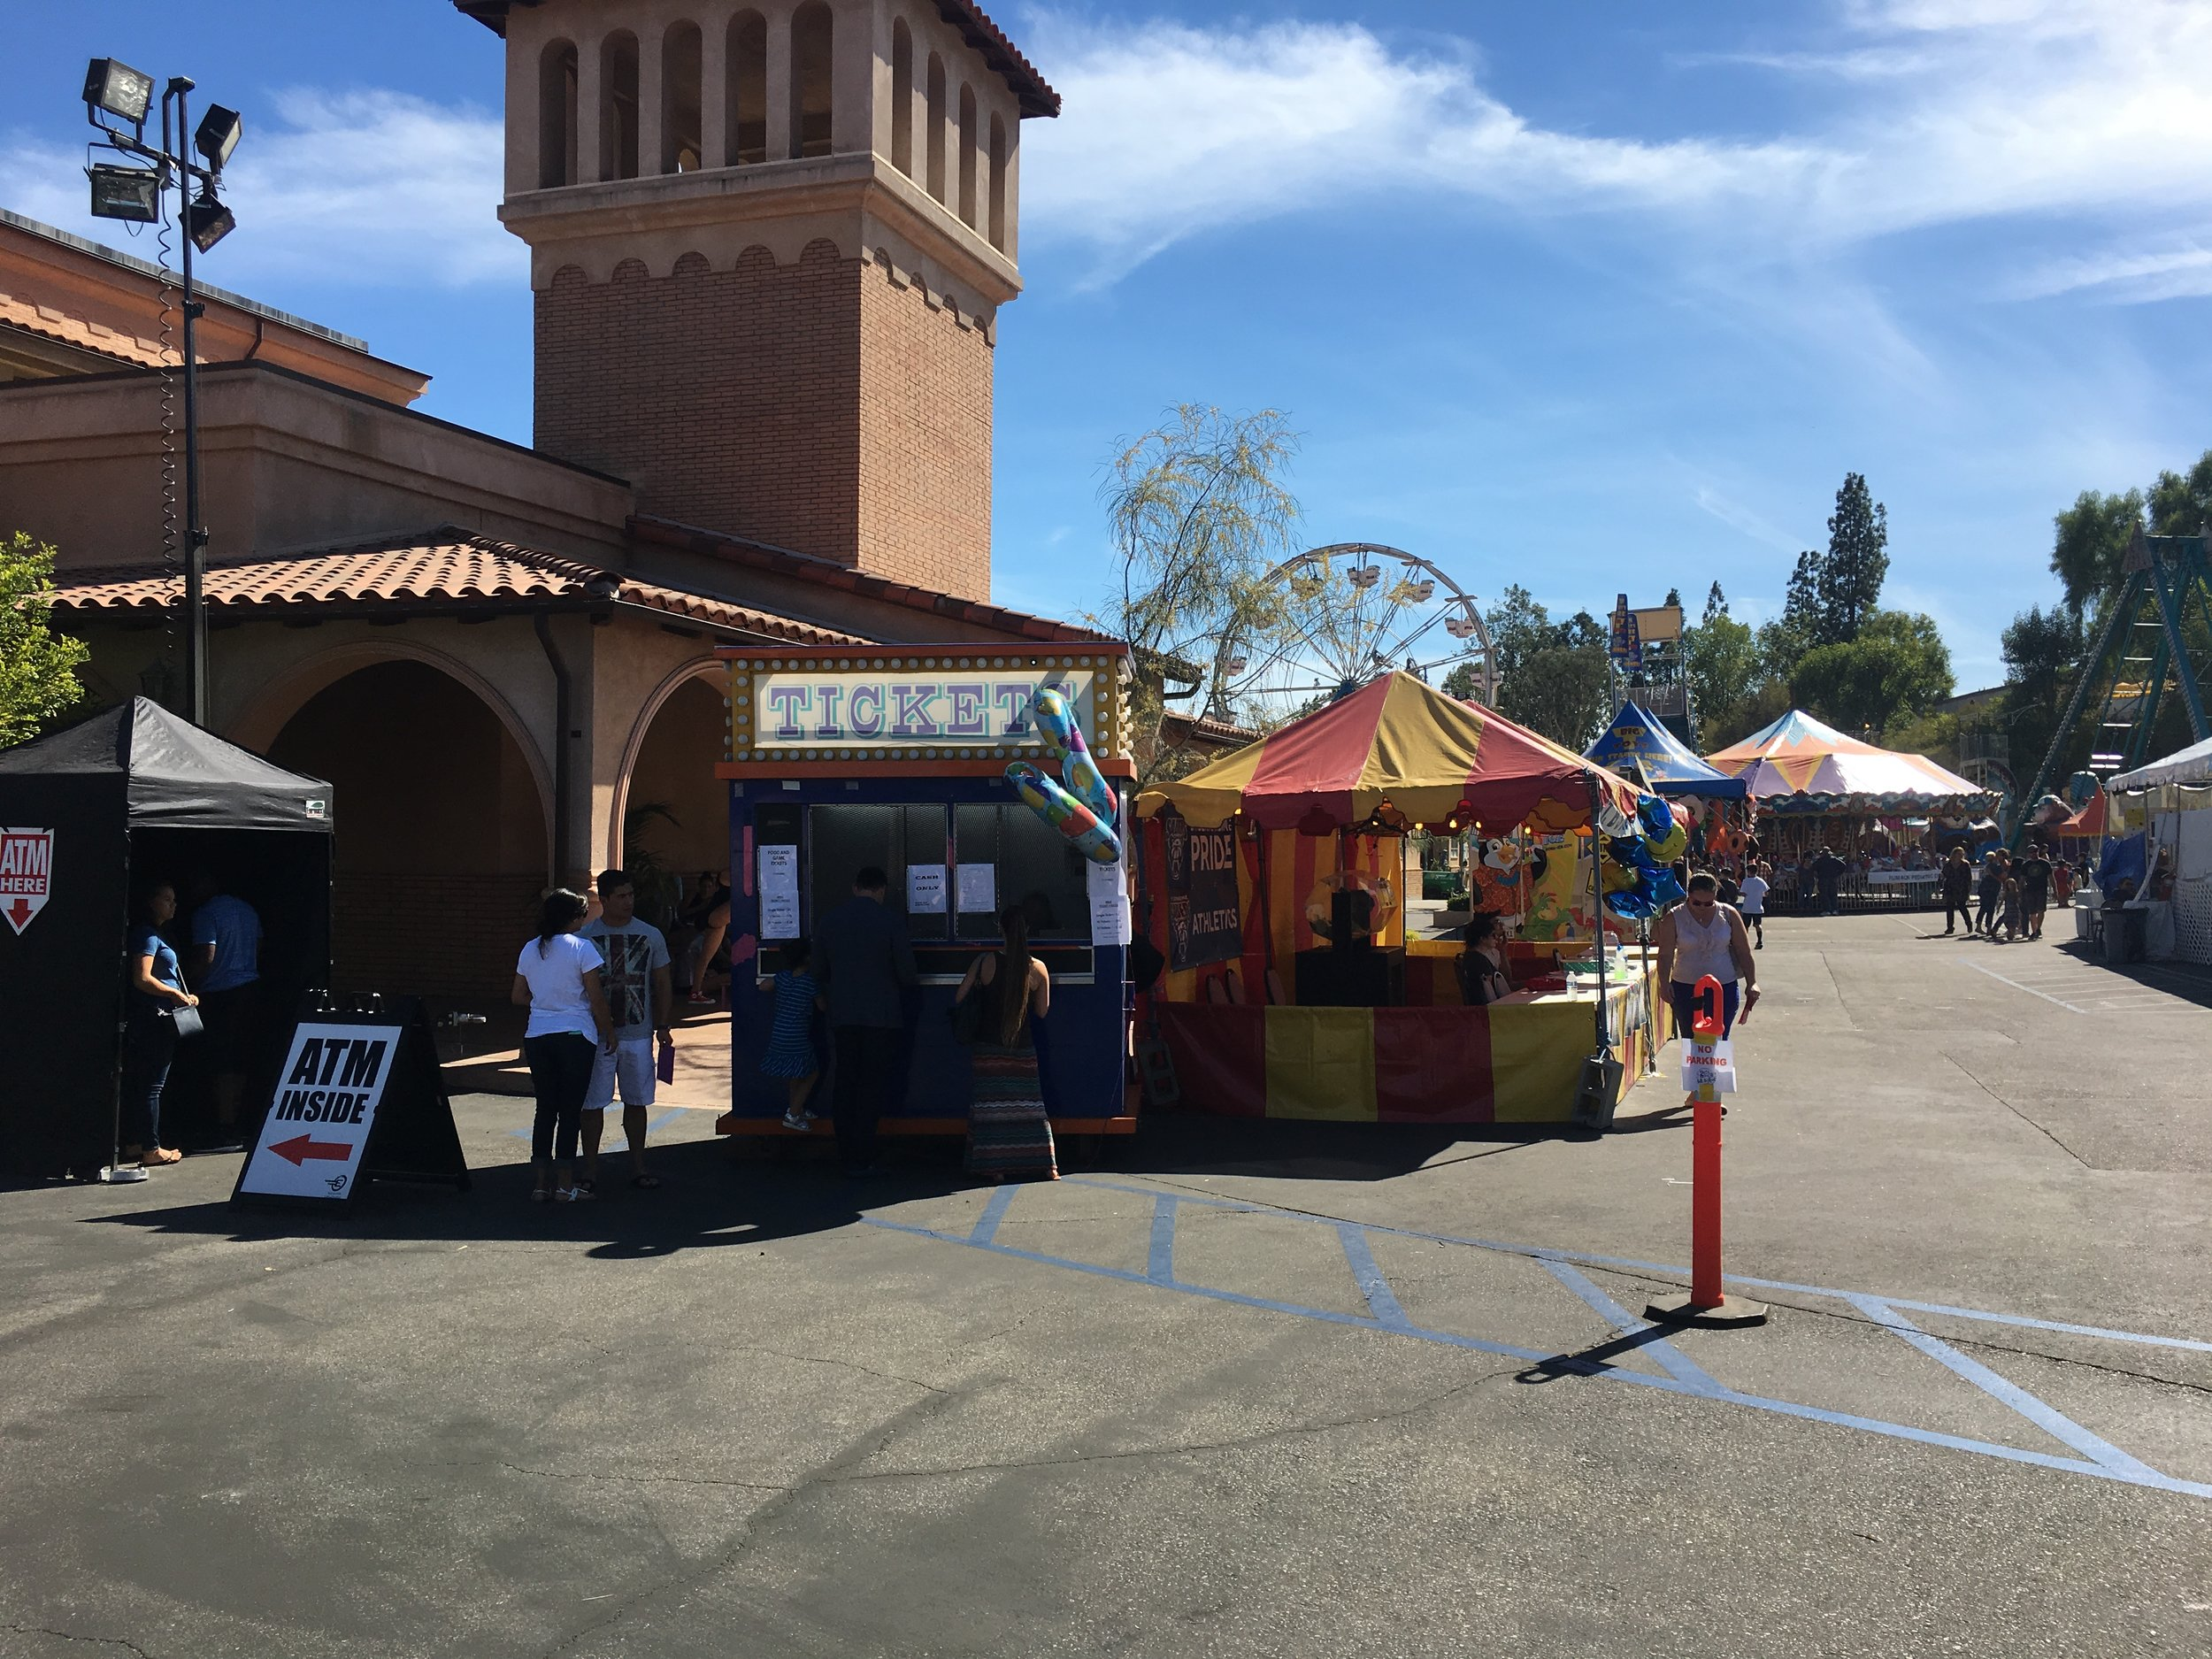 School_Fall_Festival_San_Fernando_Valley_California_Mobile_ATM_Rental_Company_for_School_Fairs_and_Festivals_Los_Angeles_CA